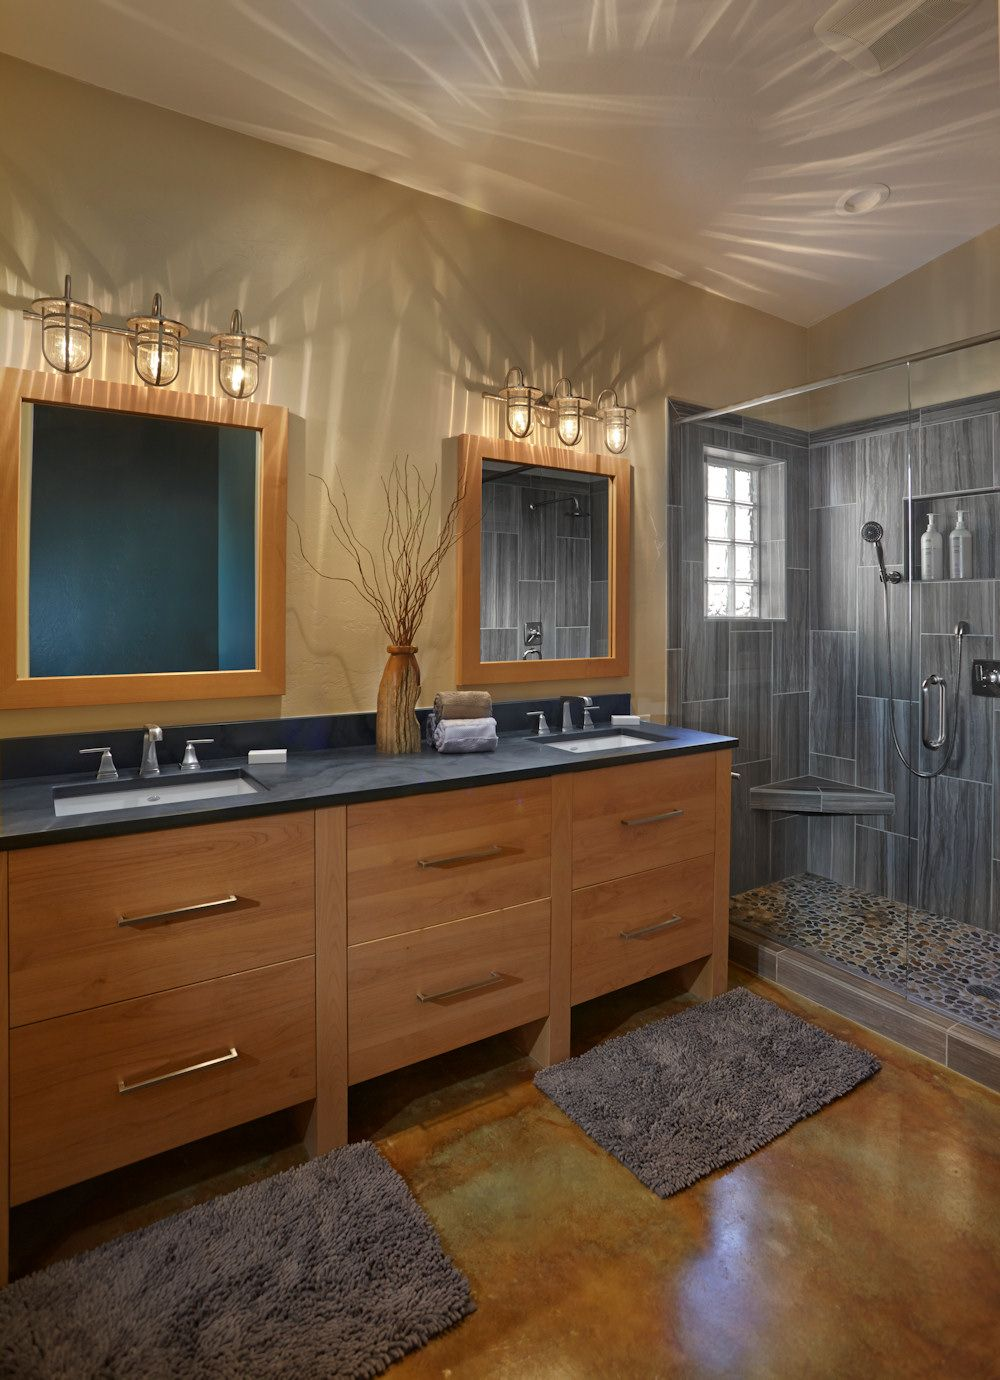 modern bathroom cabinet doors. Modern And Rustic Master Bath Cabinet By Pacific Crest Cabinets Door Style\u2026 Bathroom Doors